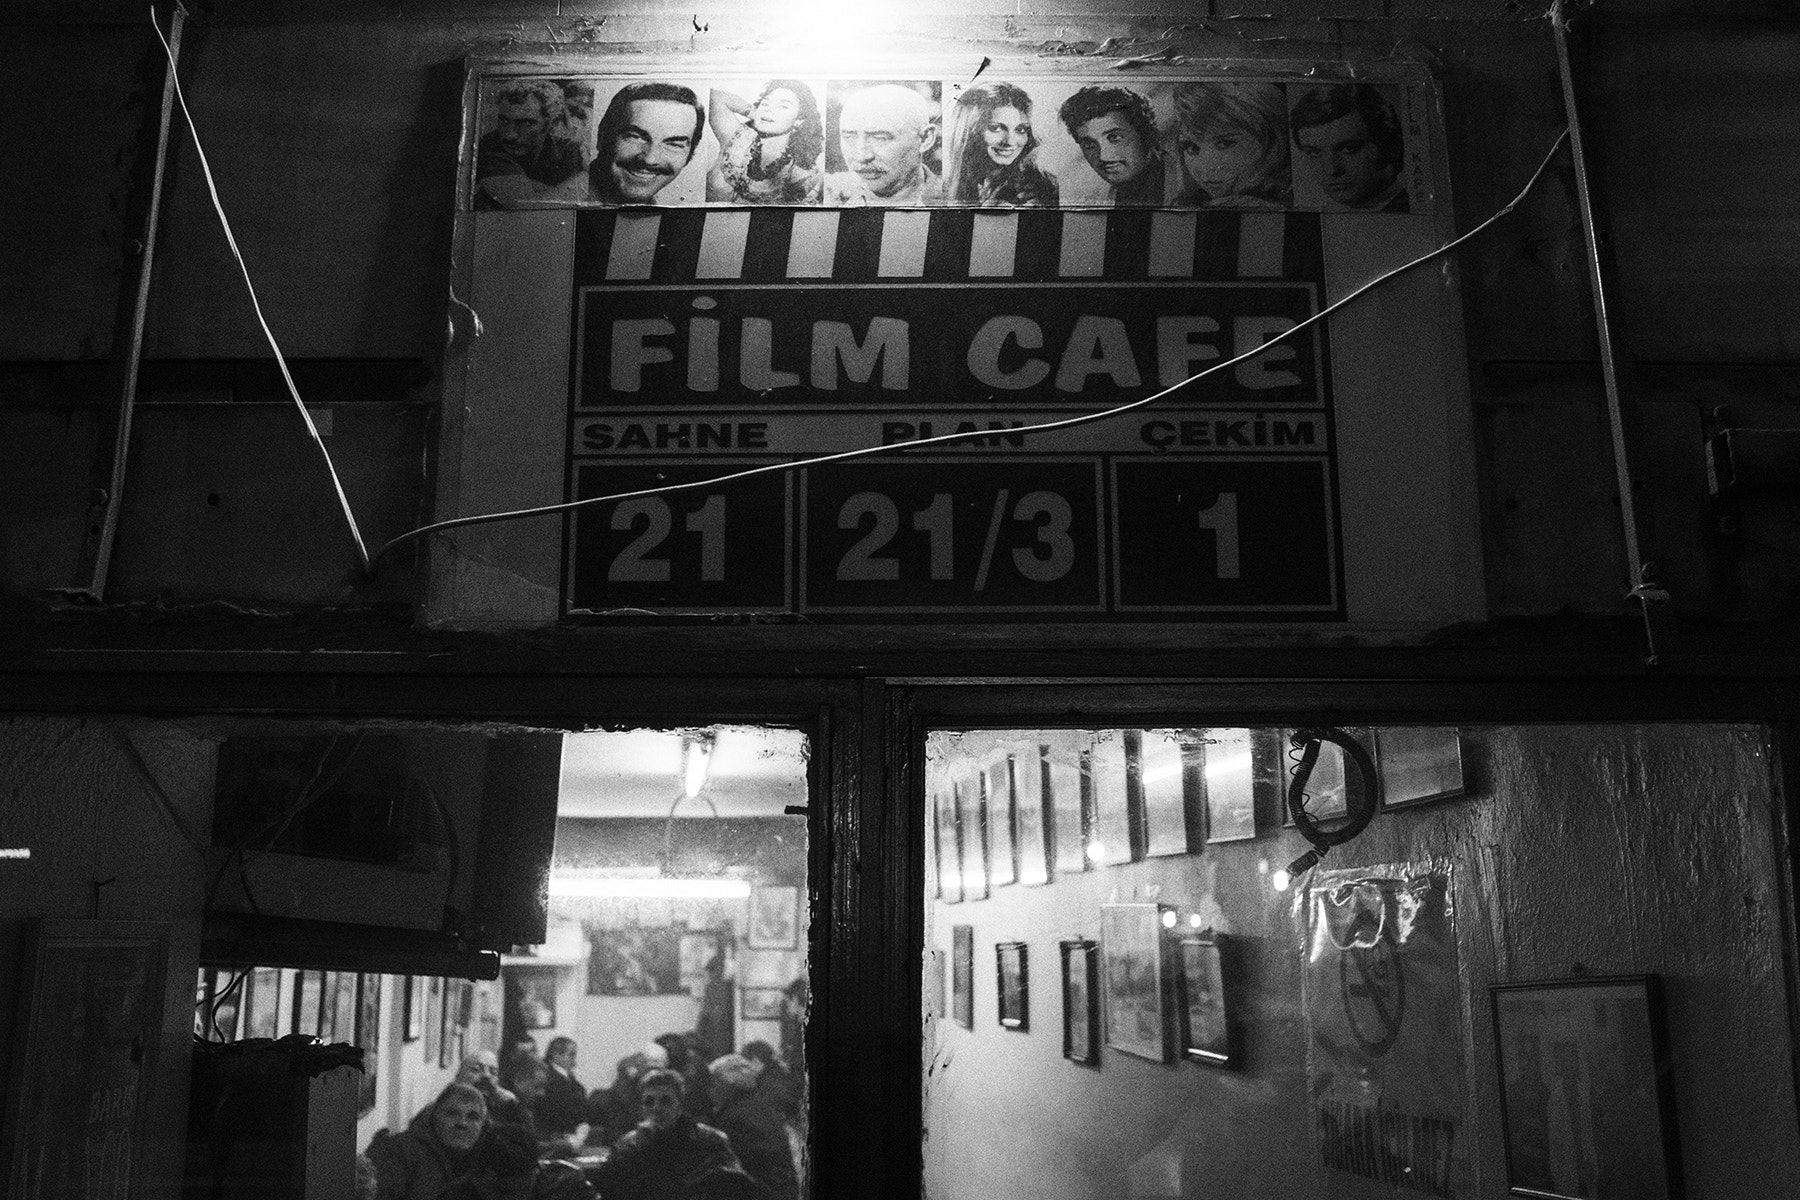 Photograph film cafe, istanbul, 2013 by  momofuku on 500px